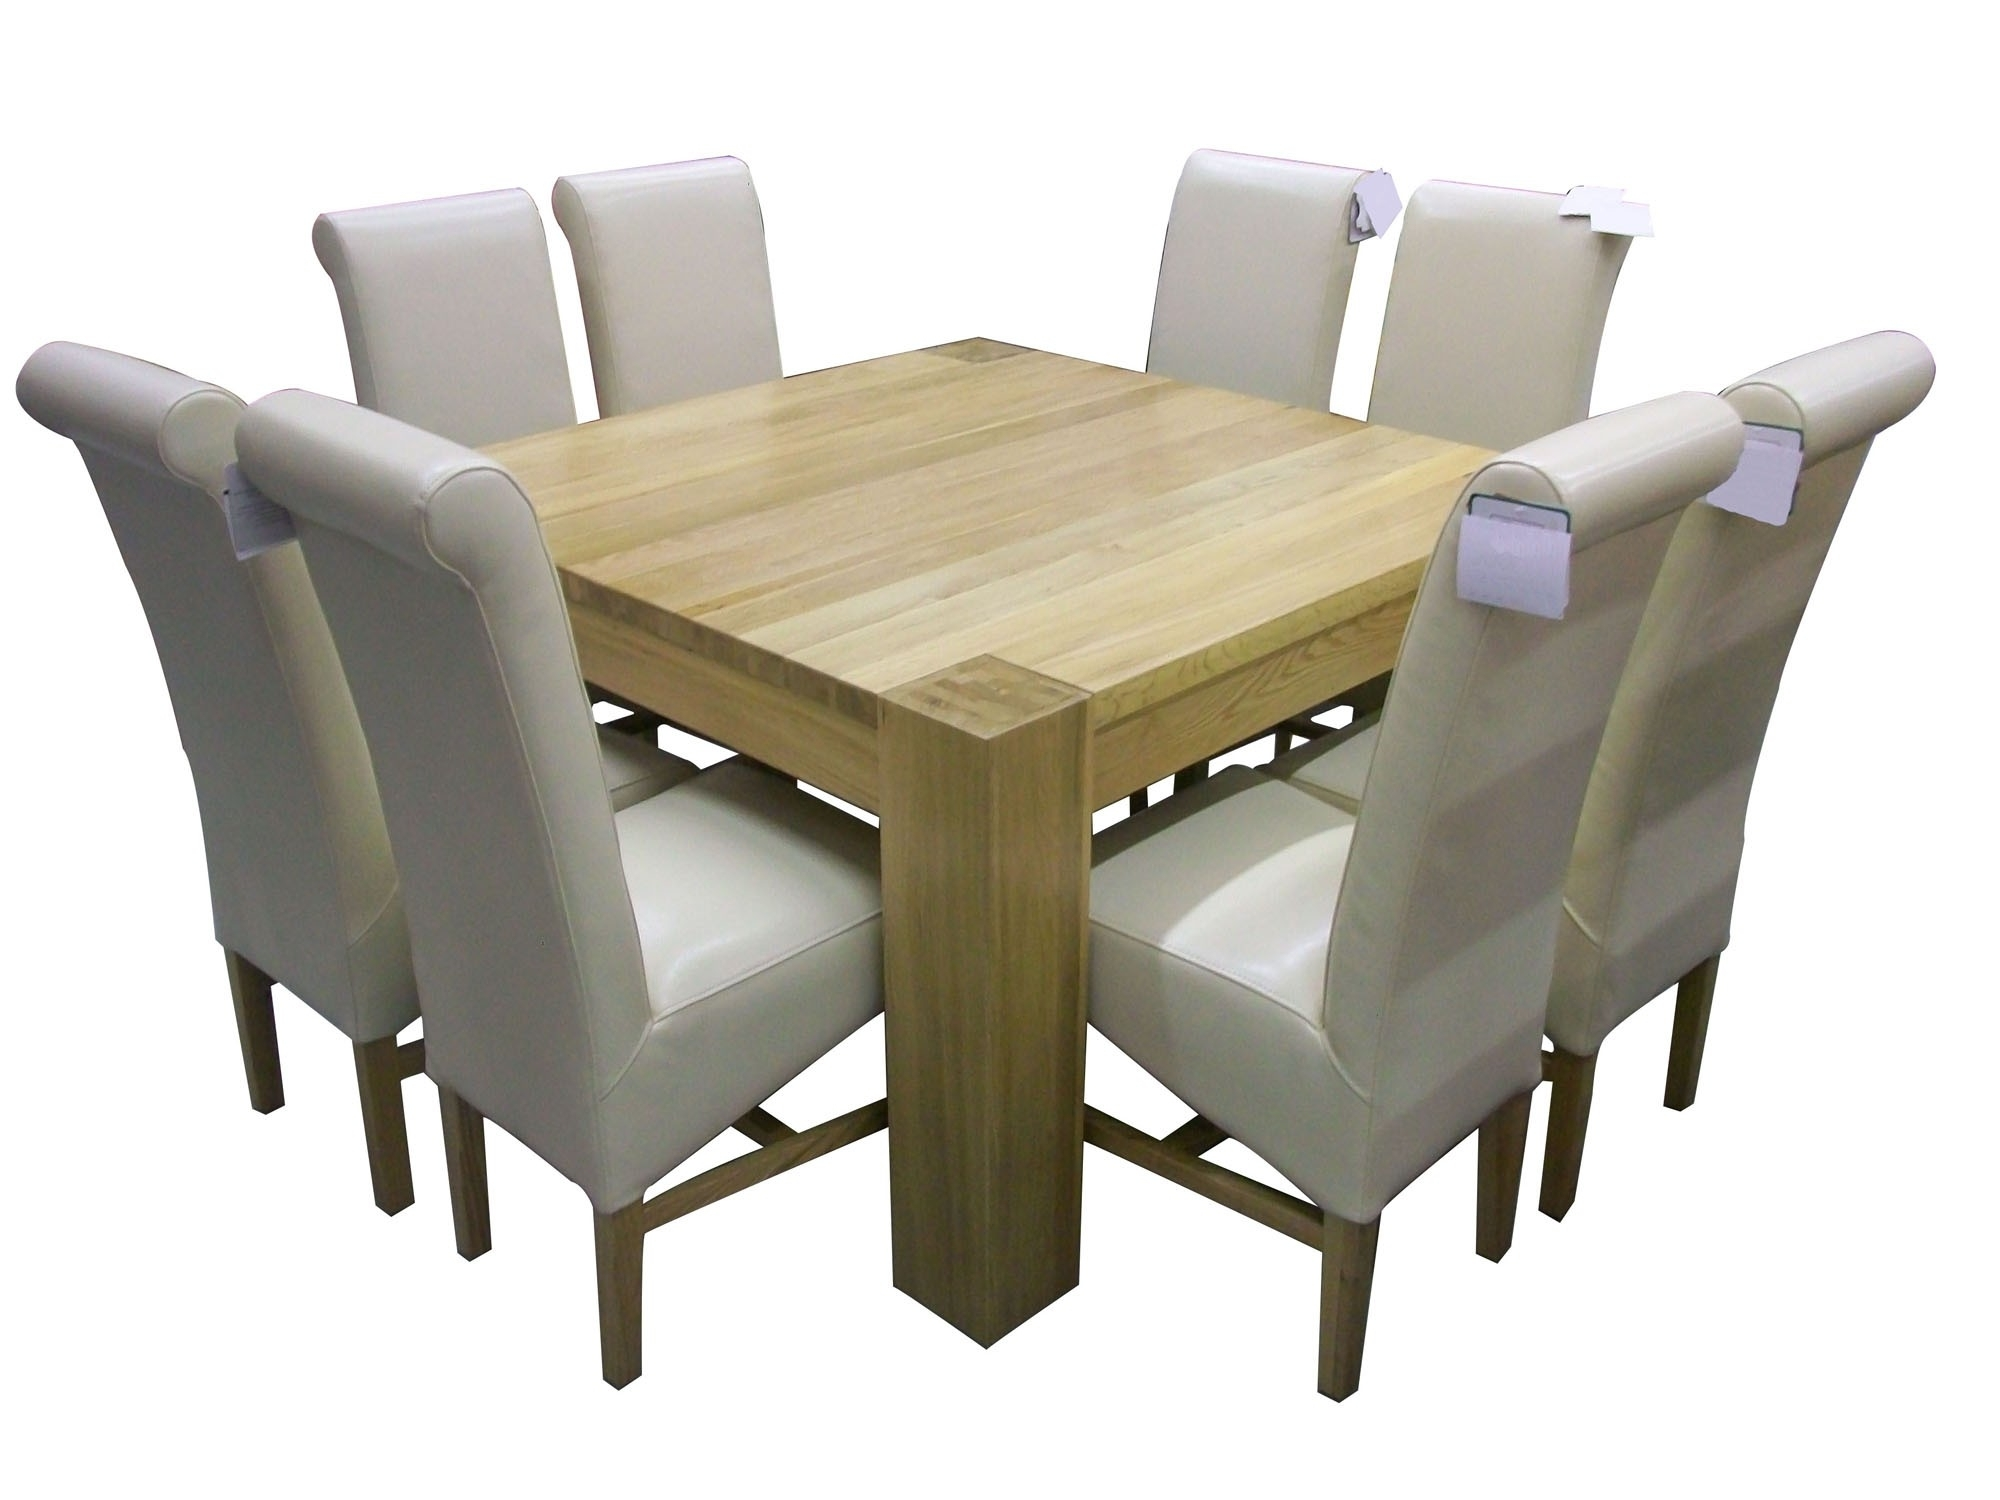 Square Oak Dining Tables Regarding Recent Solid Oak Dining Room Table And 8 Chairs Inspirational White Square (View 21 of 25)